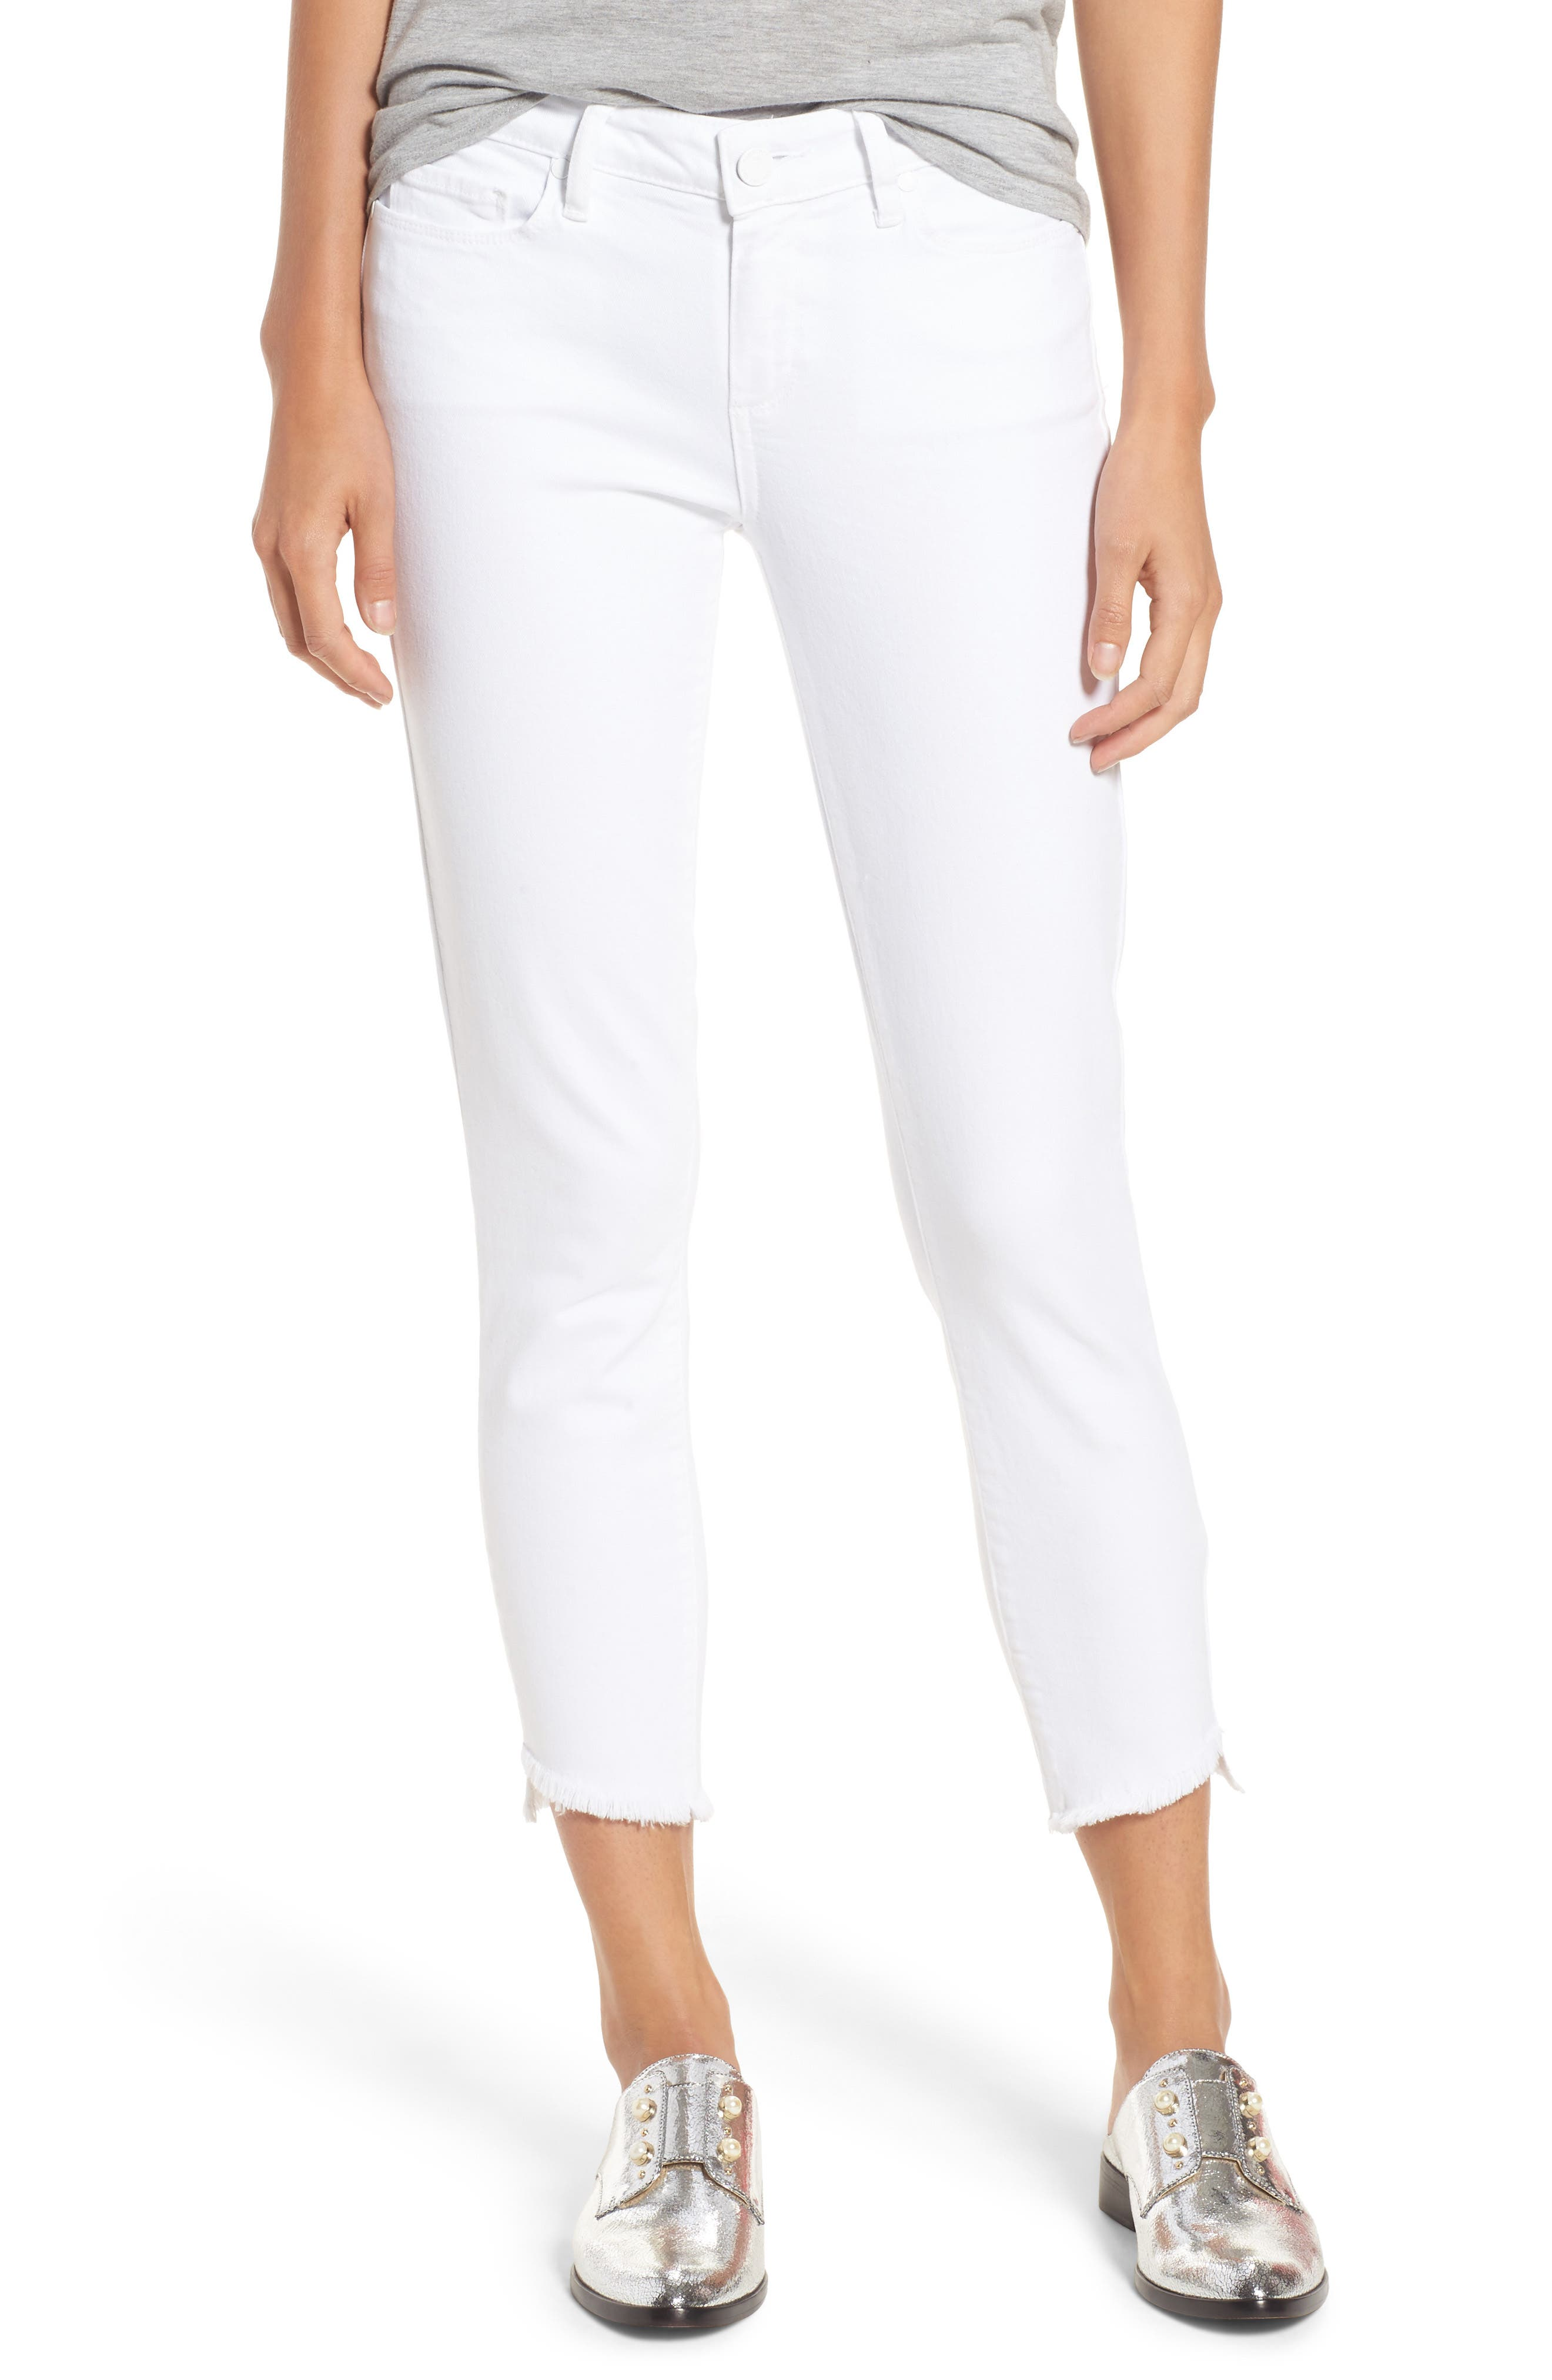 Alternate Image 1 Selected - PAIGE Verdugo Slanted Crop Skinny Jeans (Crisp White)